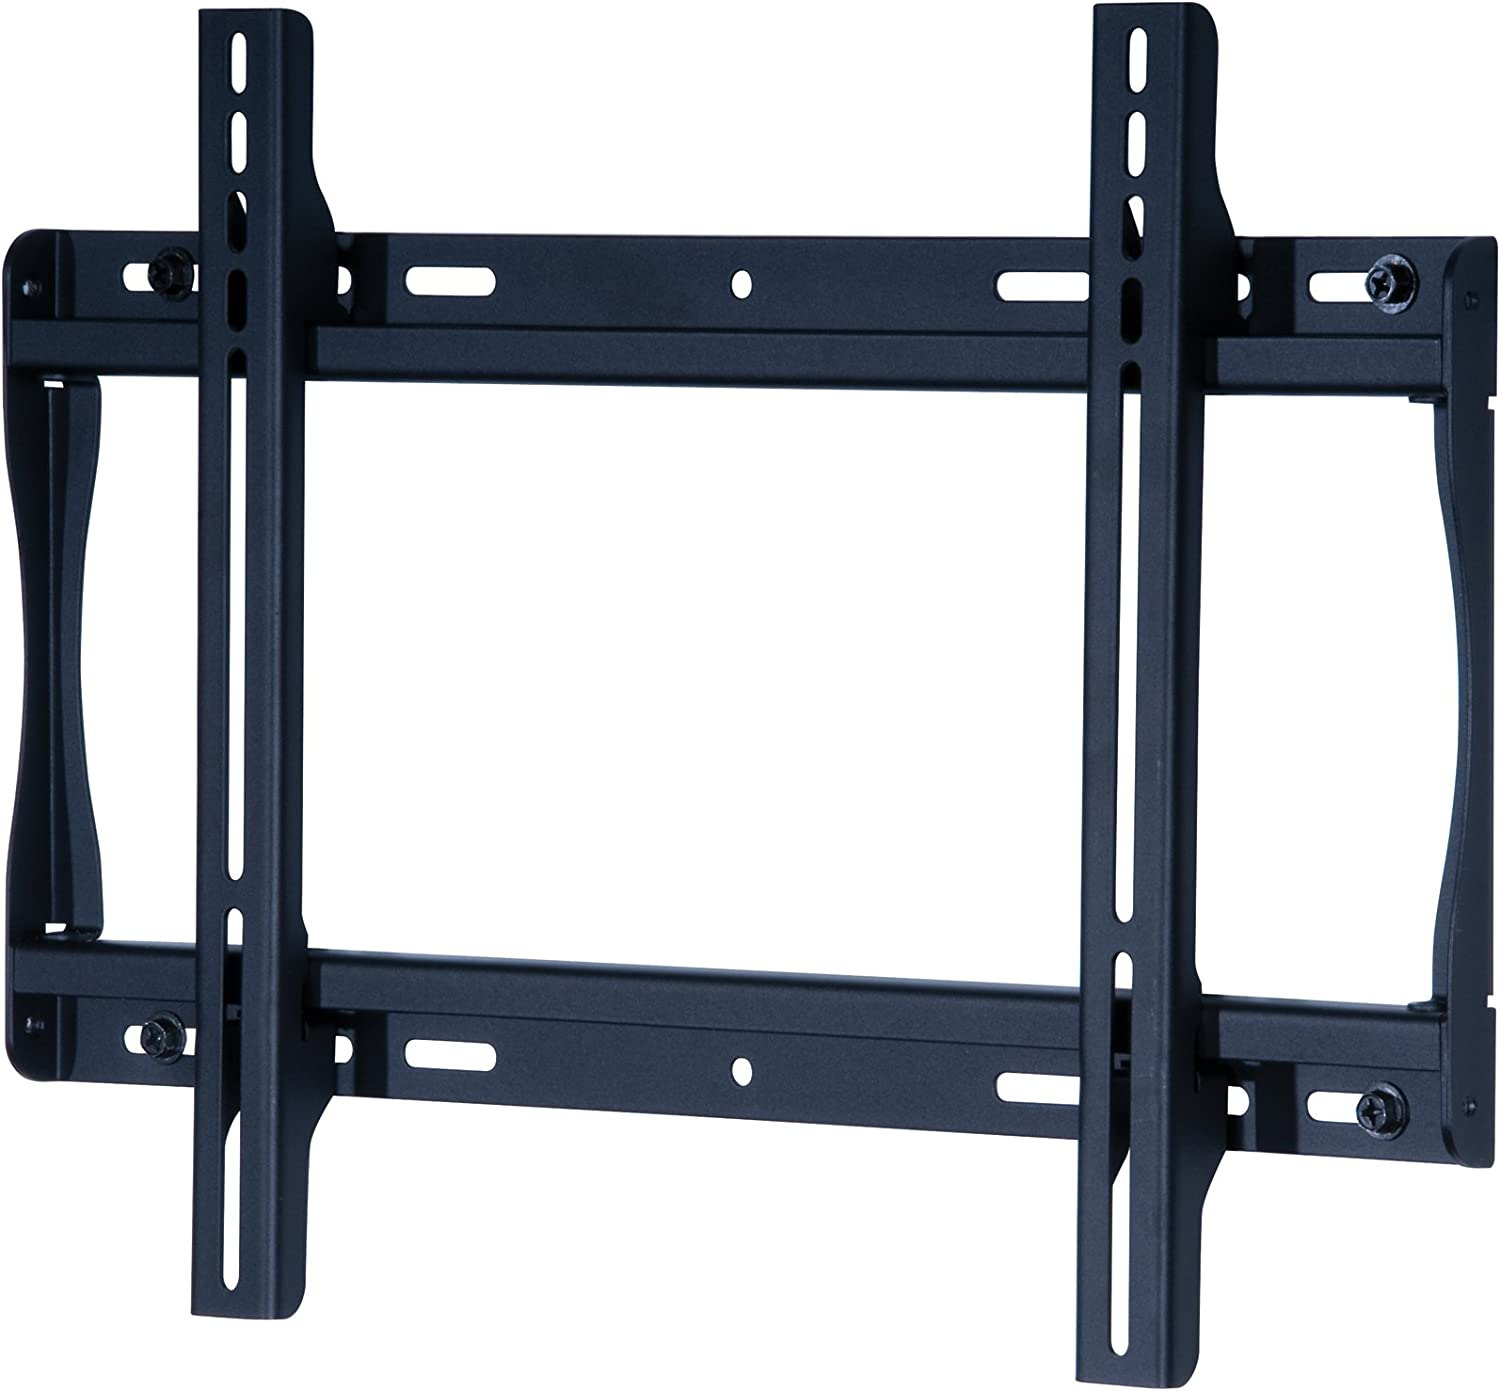 Peerless SF640 Universal Fixed Low-Profile Wall Mount for 32 Inch to 50 Inch Displays Black